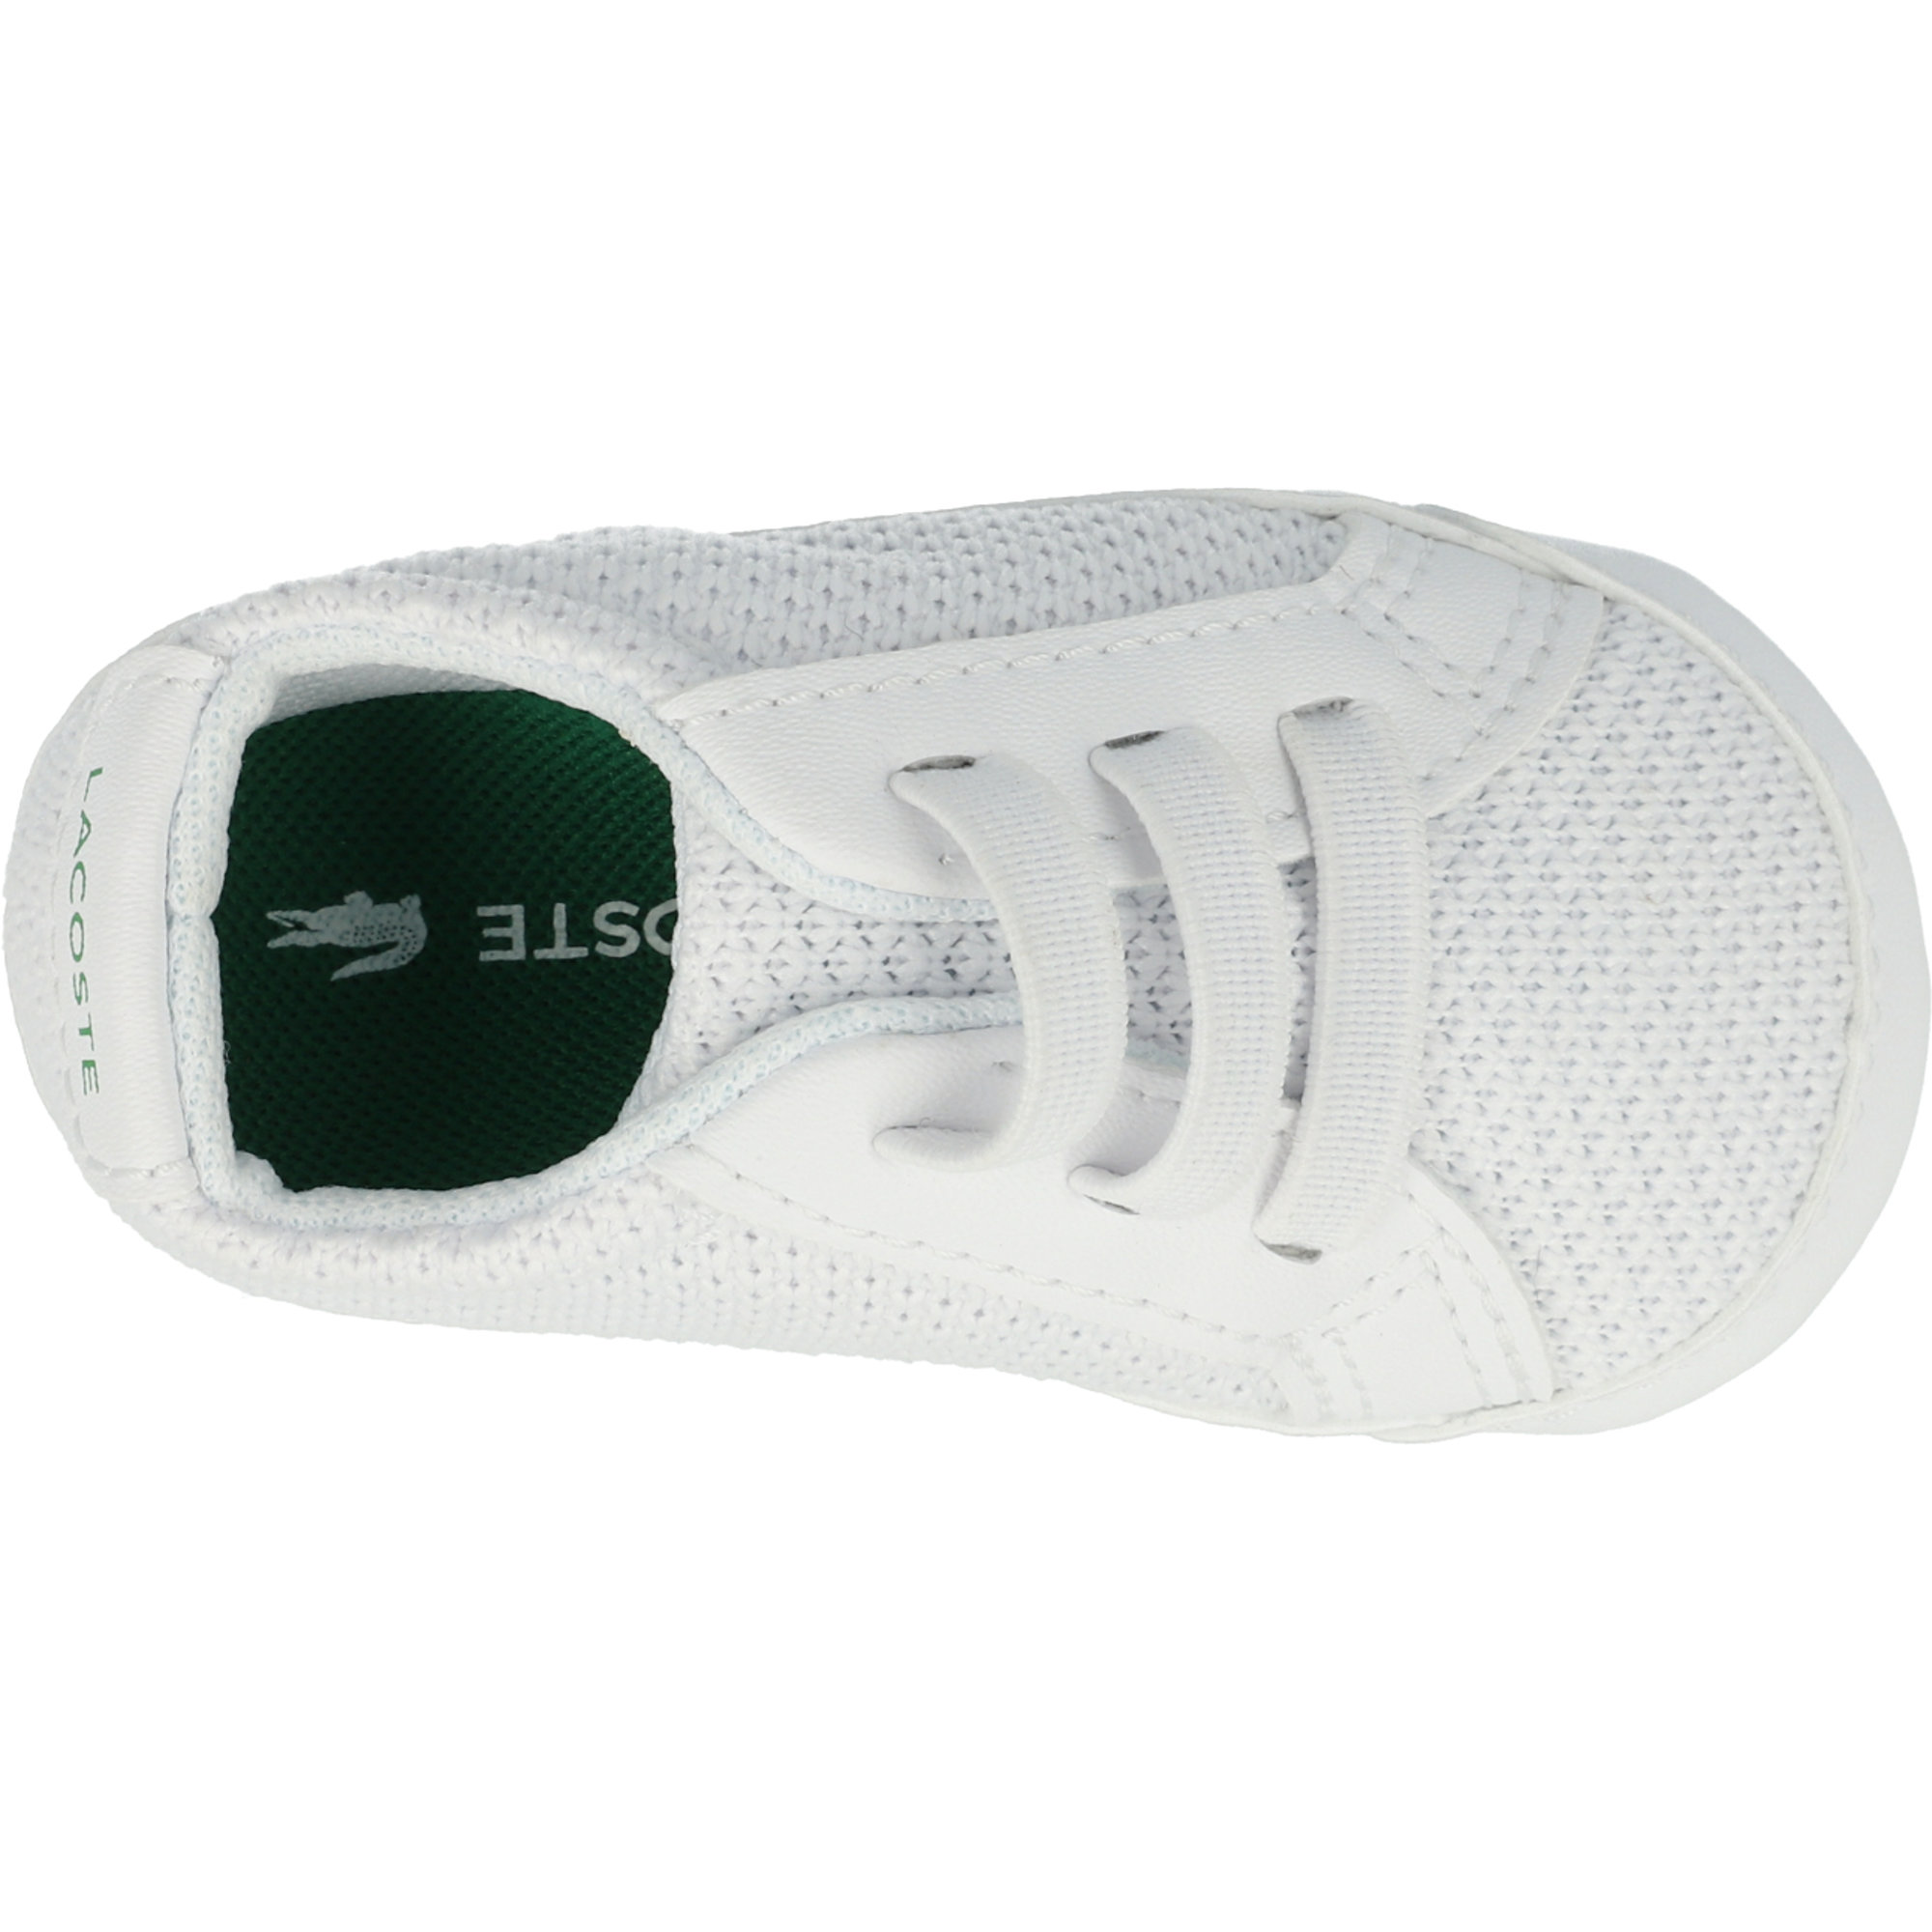 White//Green Lacoste Crib 318 Baby Shoes 7-36CAB0001082